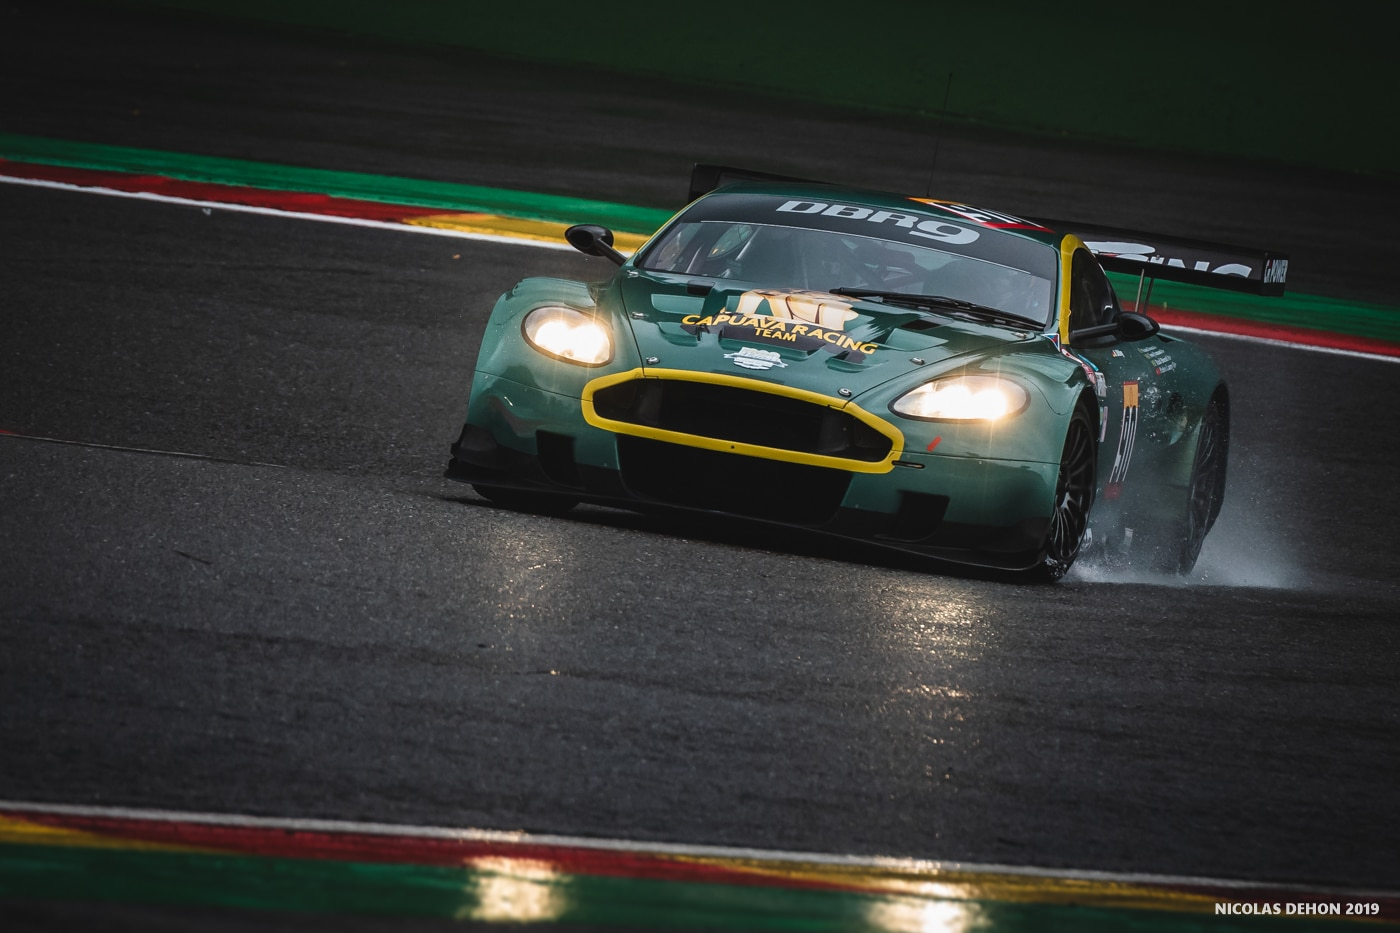 Spa Six Hours 2019 - Aston Martin DBR9